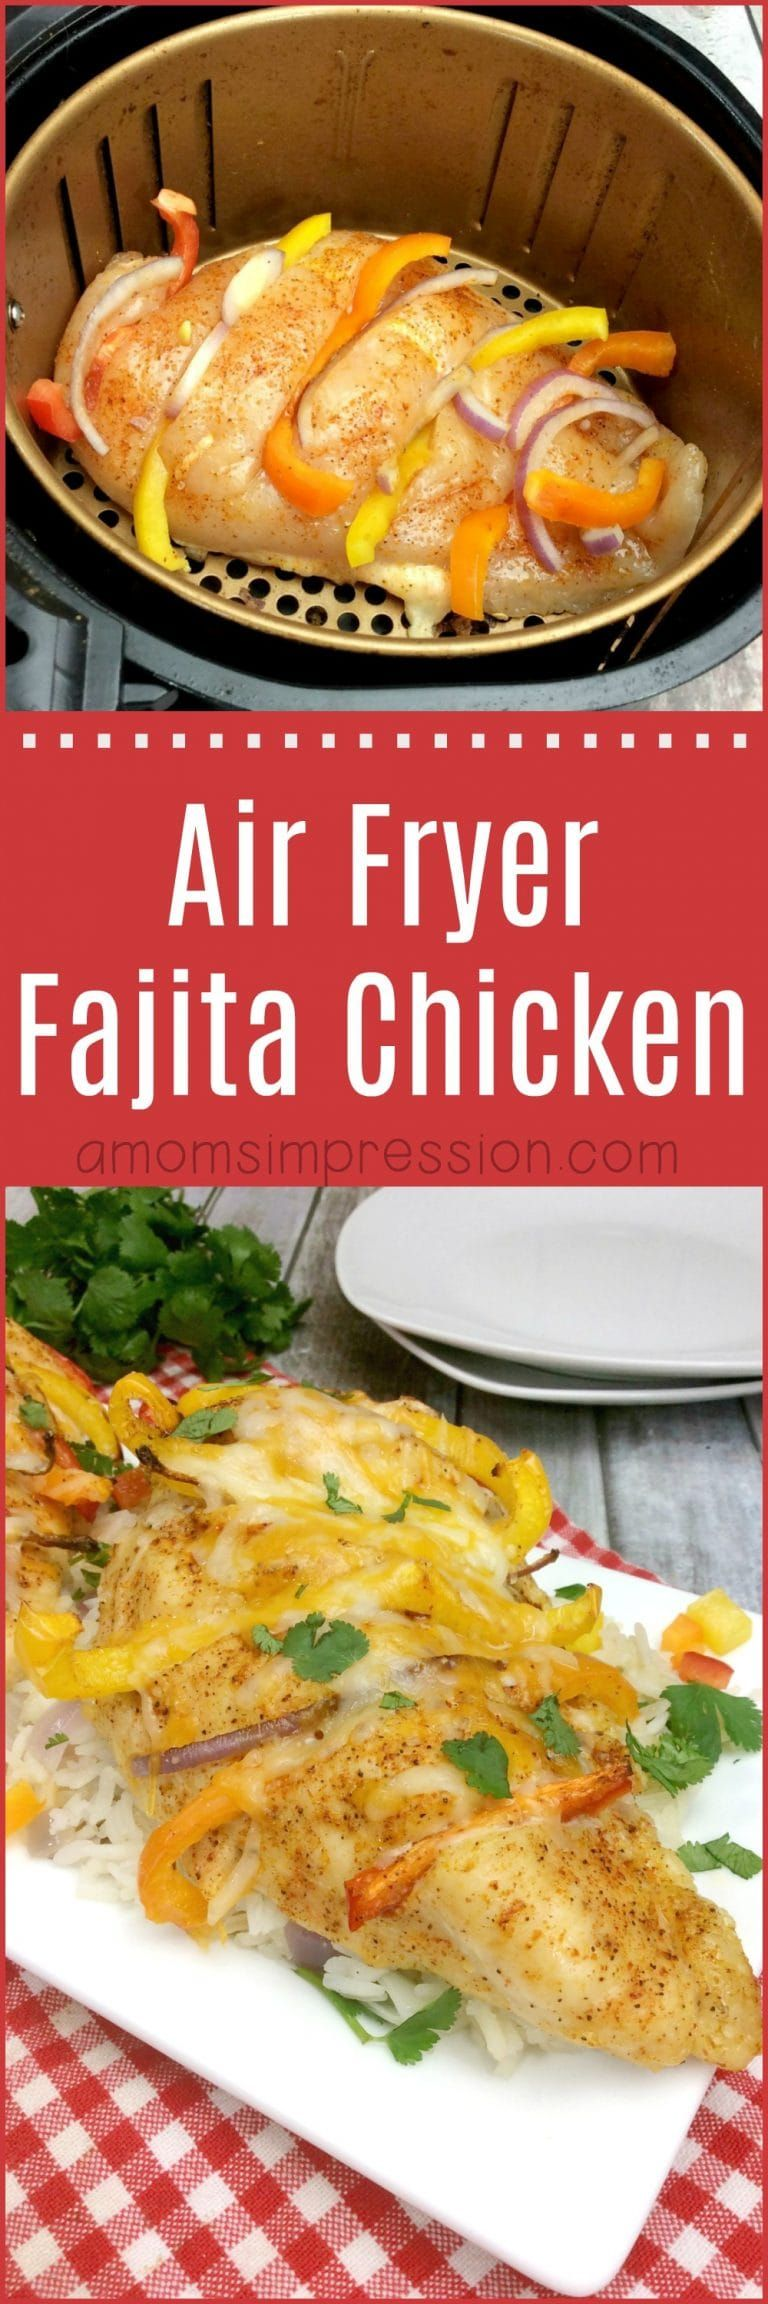 Here is a delicious and healthy air fryer fajita chicken